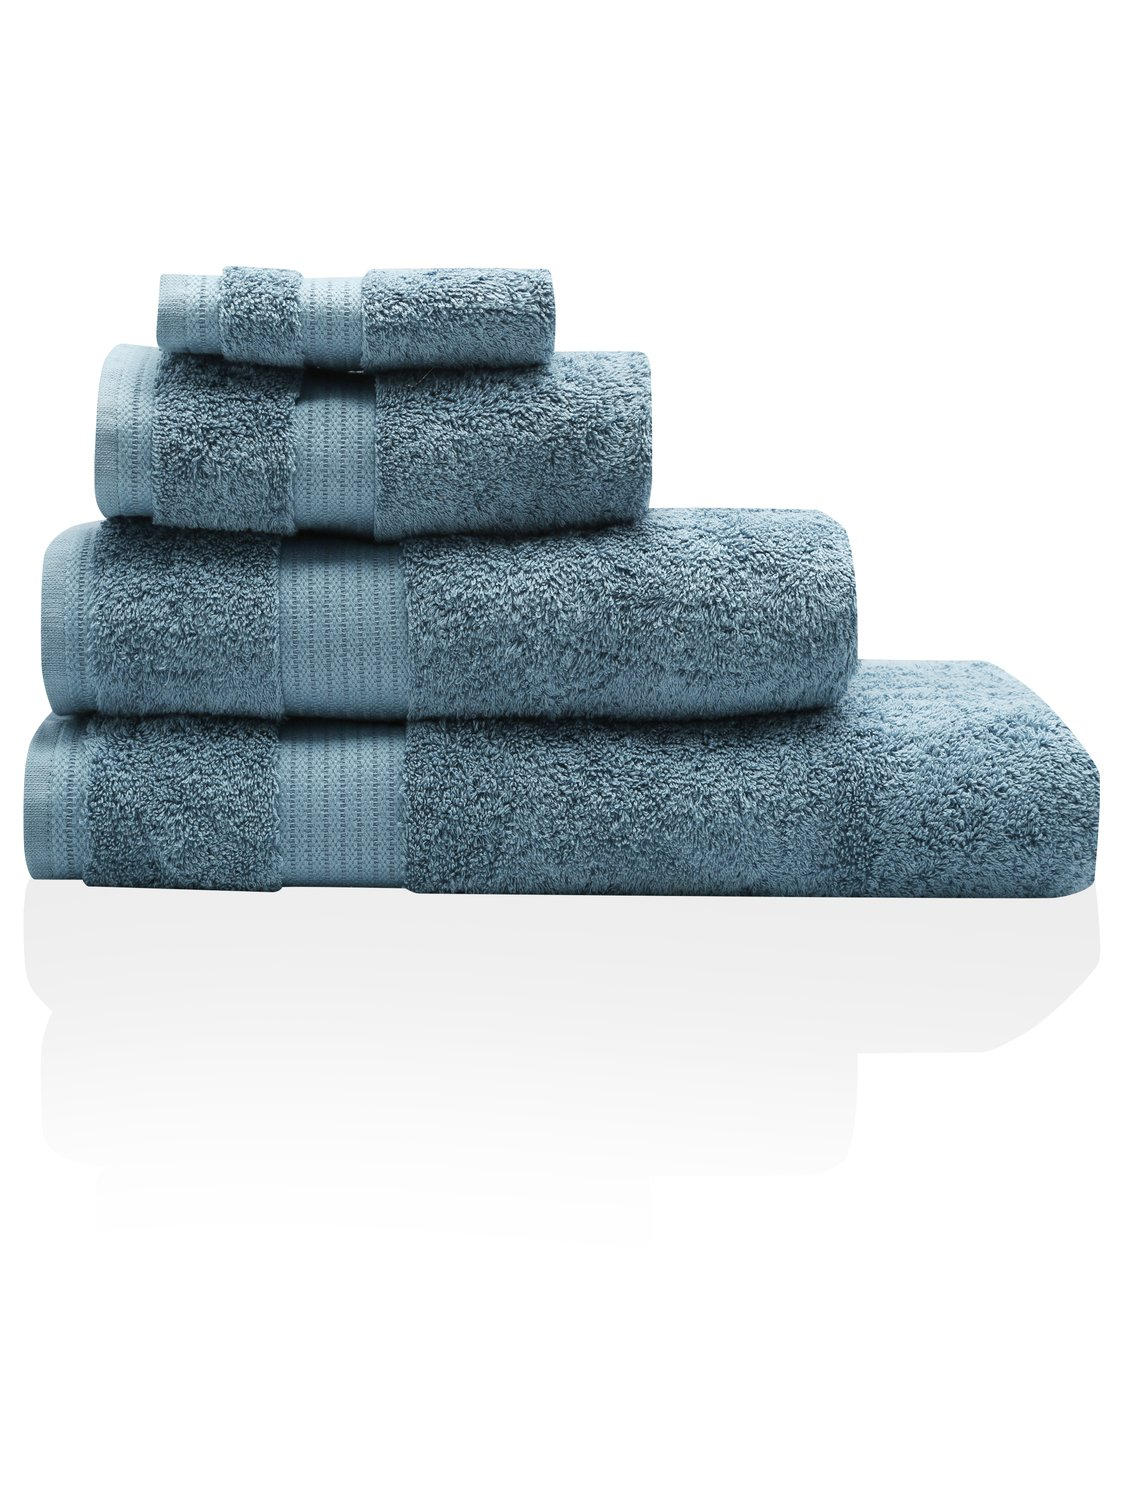 100% Combed Cotton 580Gsm Soft And Absorbent Bathroom Facecloth - Petrol Blue